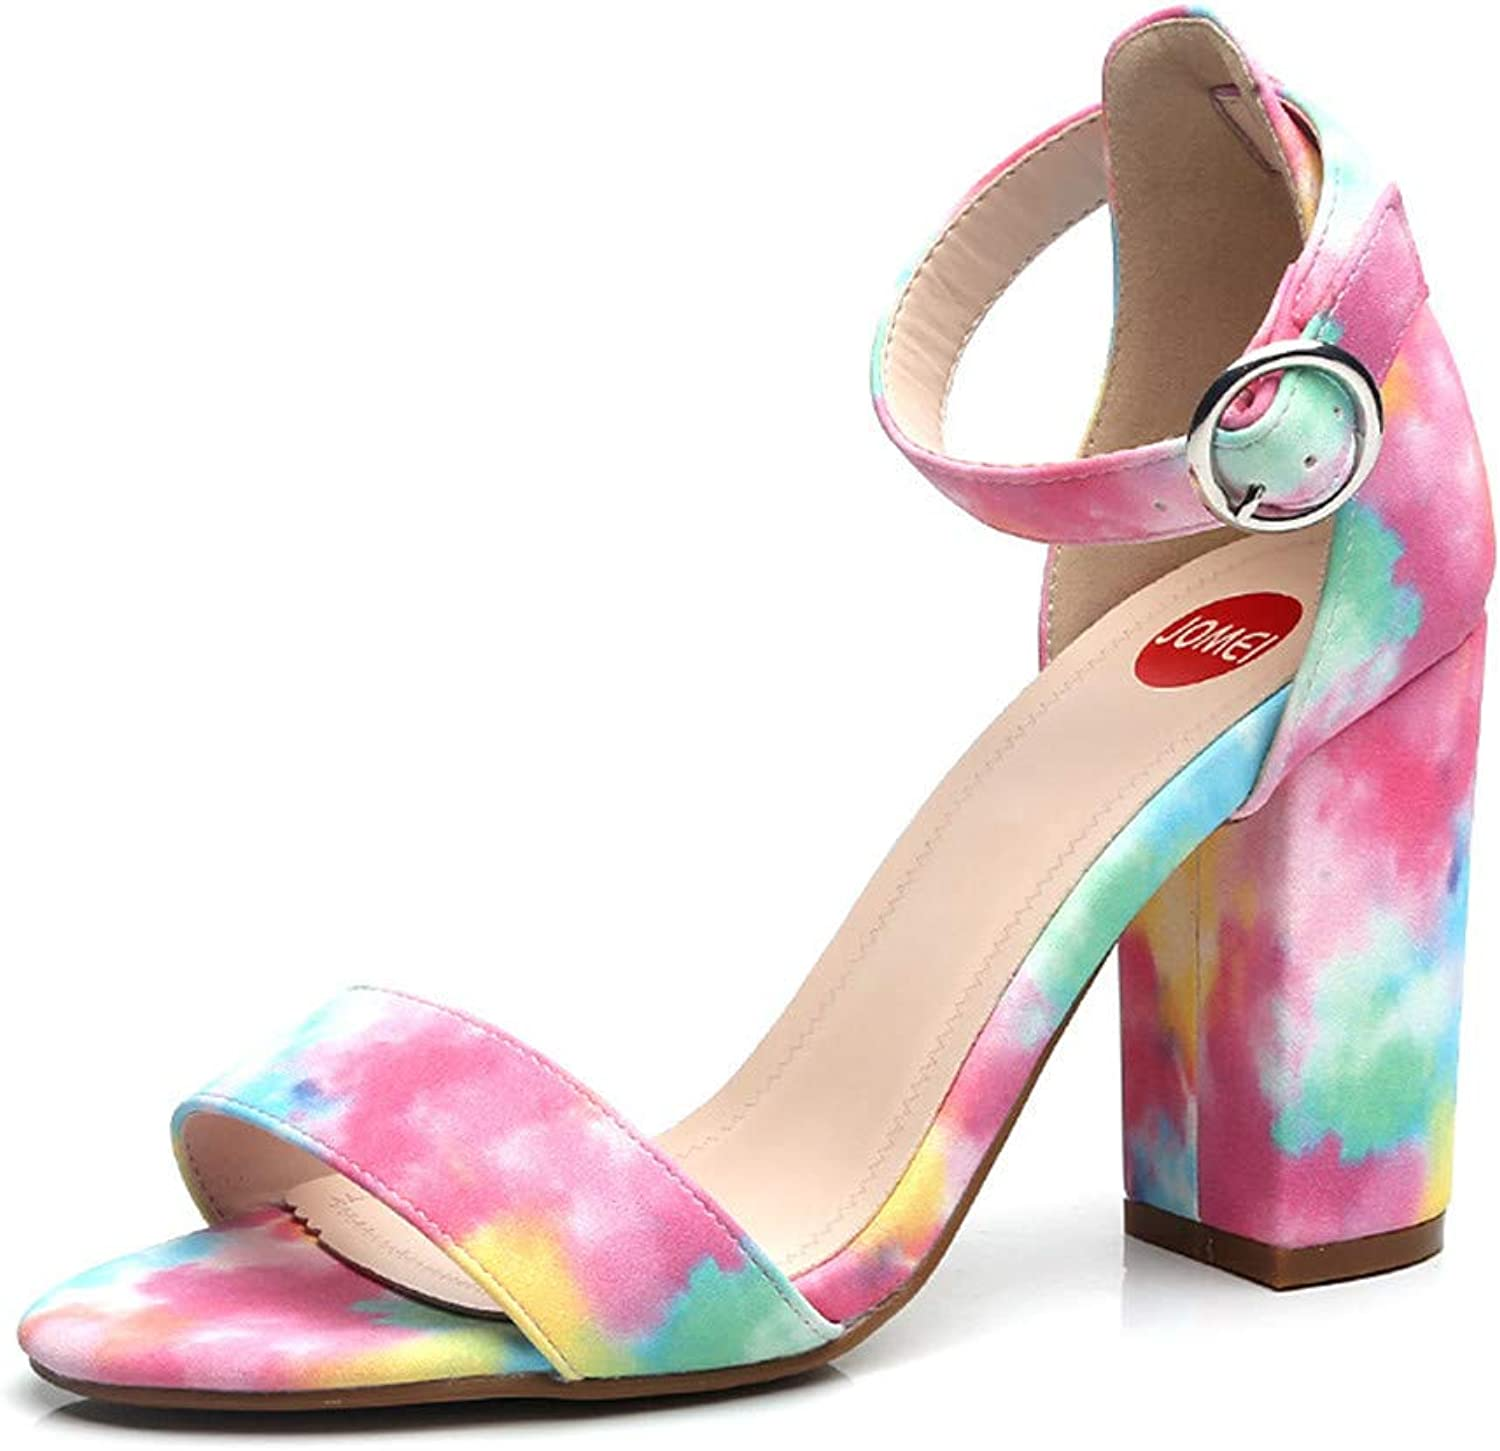 Rough-Heeled Sandals Rainbow color Buckle Ladies Party Date High-Heeled shoes Fashion